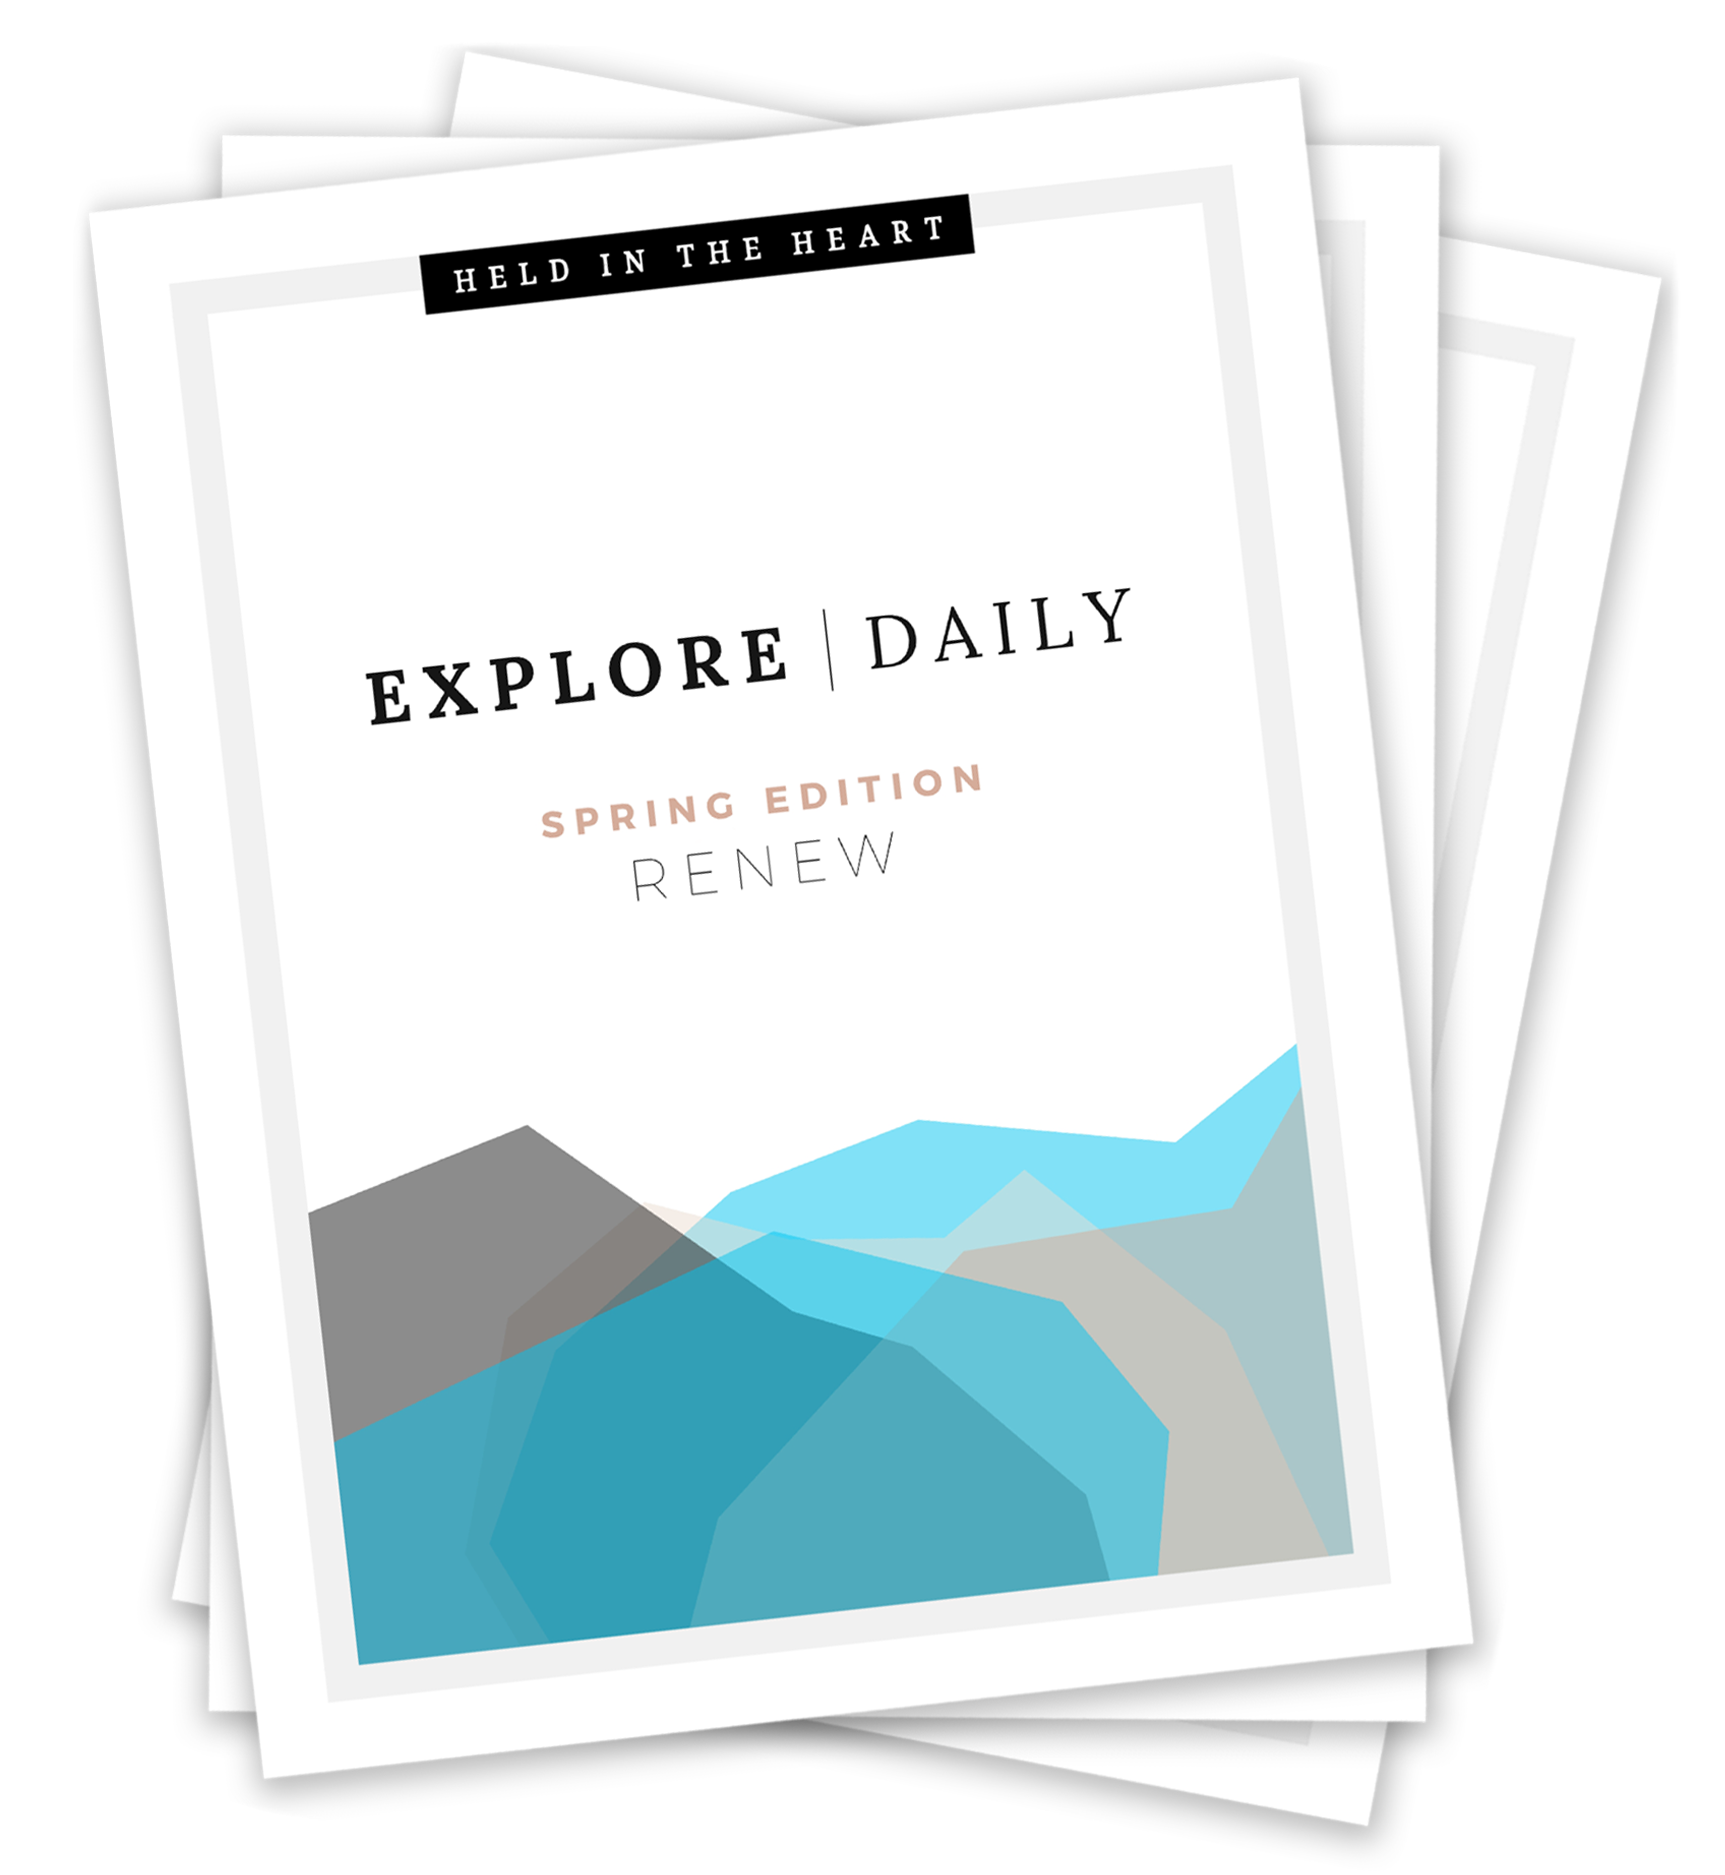 EXPLORE-Daily_2018_RENEW-Edition.png